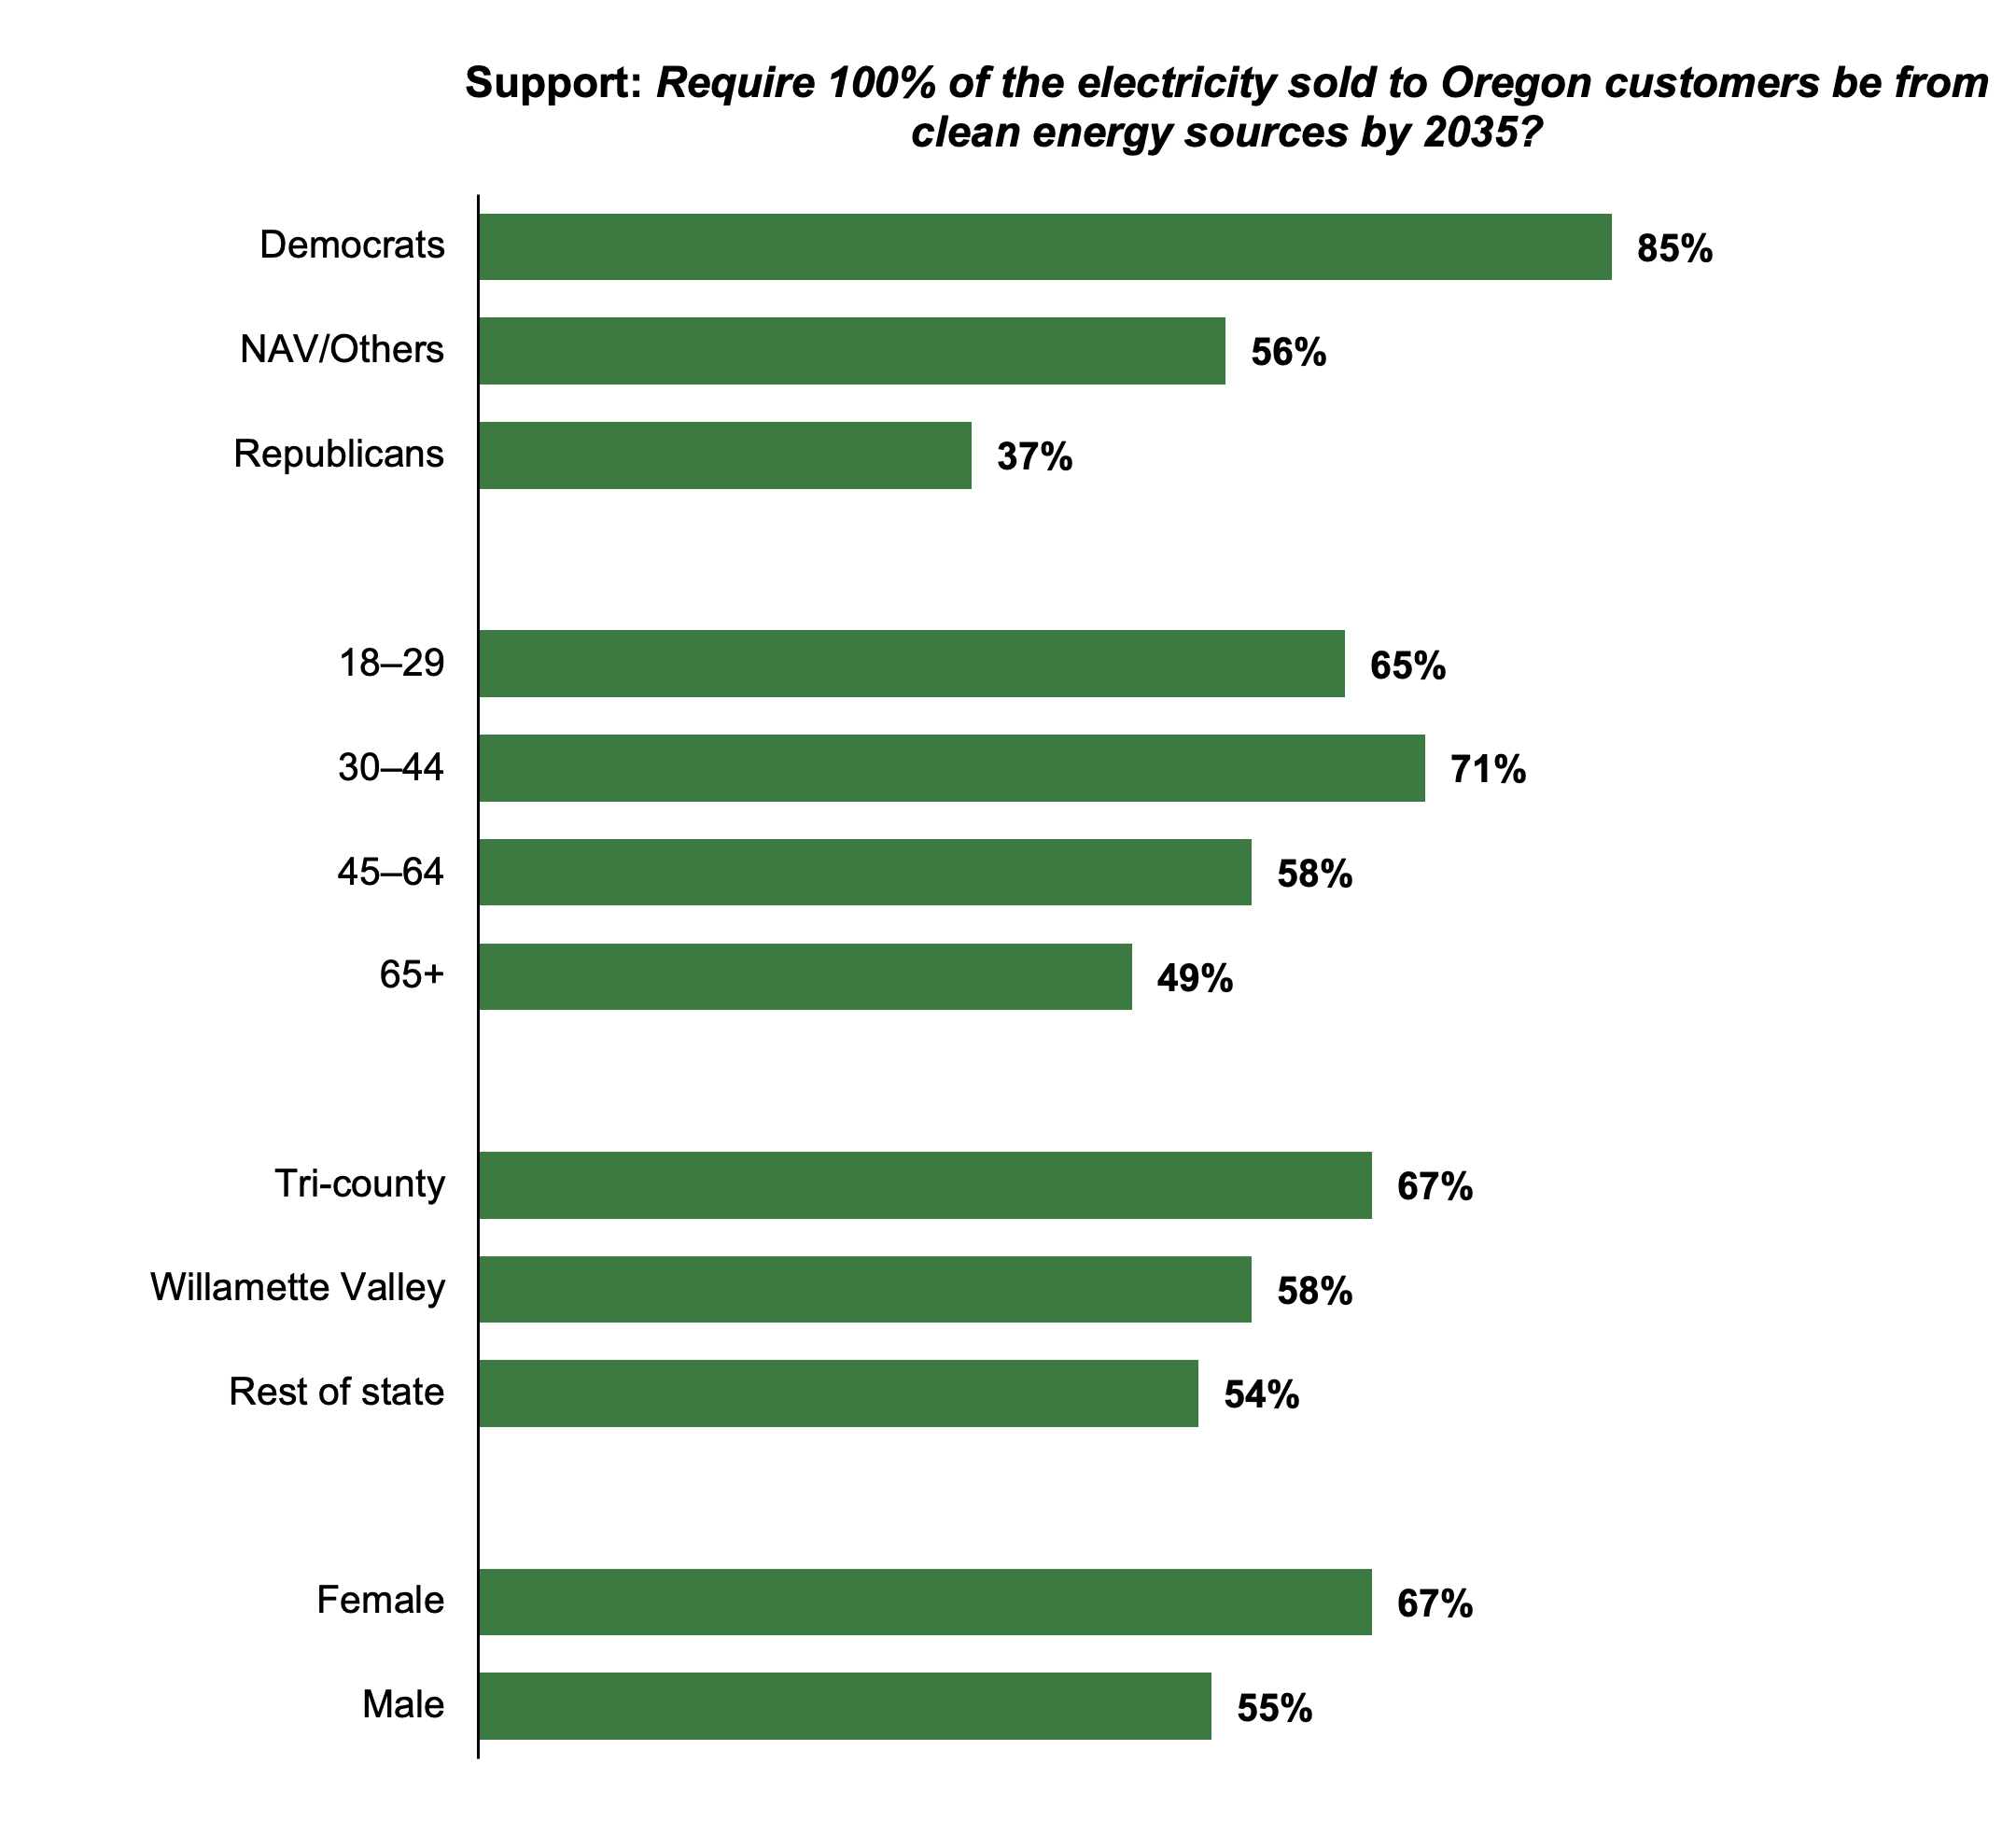 Bar graph results from asking Oregon residents if they support requiring 100% of the electricity sold to Oregon customers to come from clean energy sources by 2035. Separated by political affiliation, age, geography, and sex.